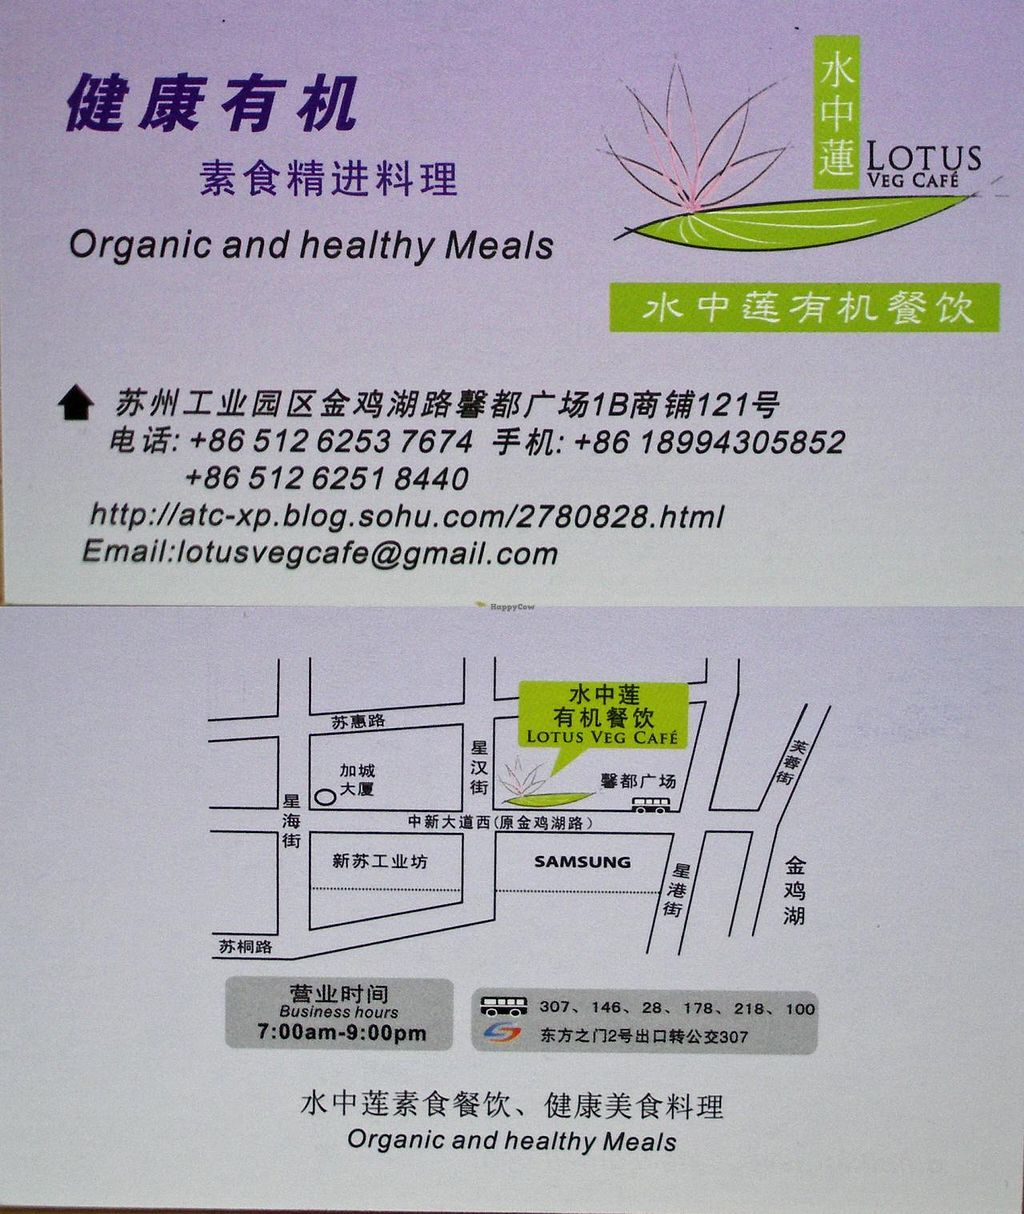 """Photo of Lotus in Water Organics  by <a href=""""/members/profile/Ricardo"""">Ricardo</a> <br/>Business Card of the Restaurant It maybe useful <br/> February 22, 2014  - <a href='/contact/abuse/image/18448/64725'>Report</a>"""